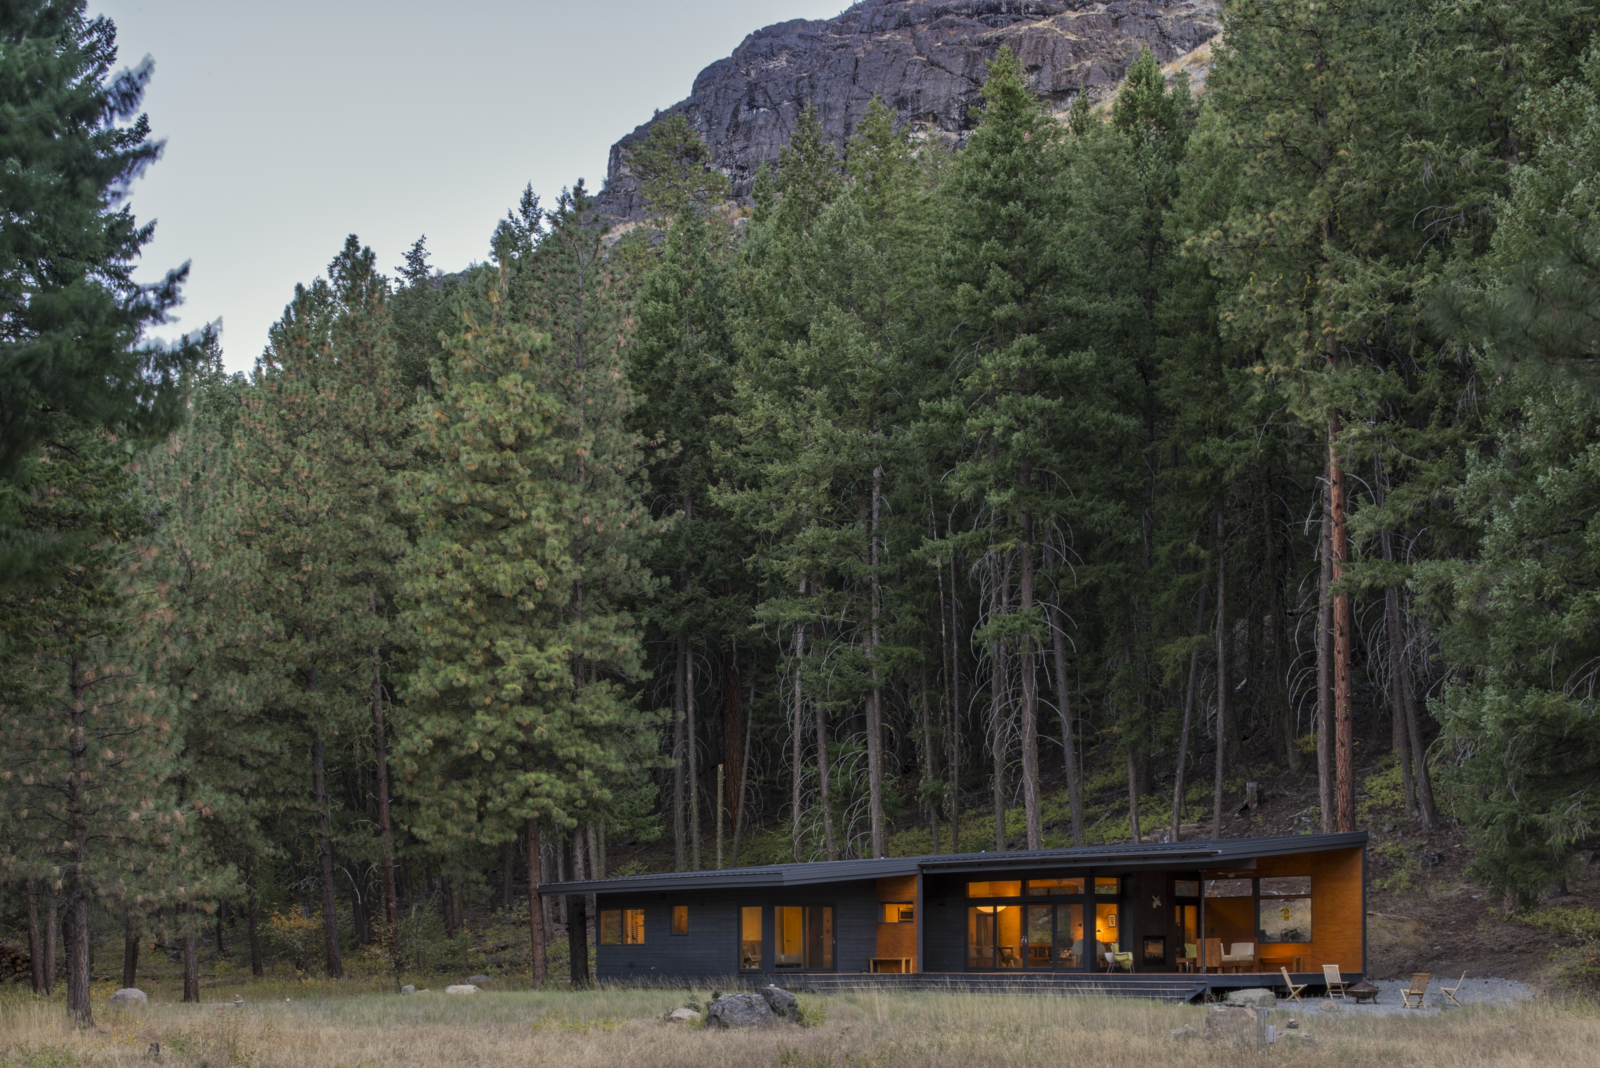 Photo 1 of 10 in A Lean Cabin in Washington Dismantles the Indoor/Outdoor Divide